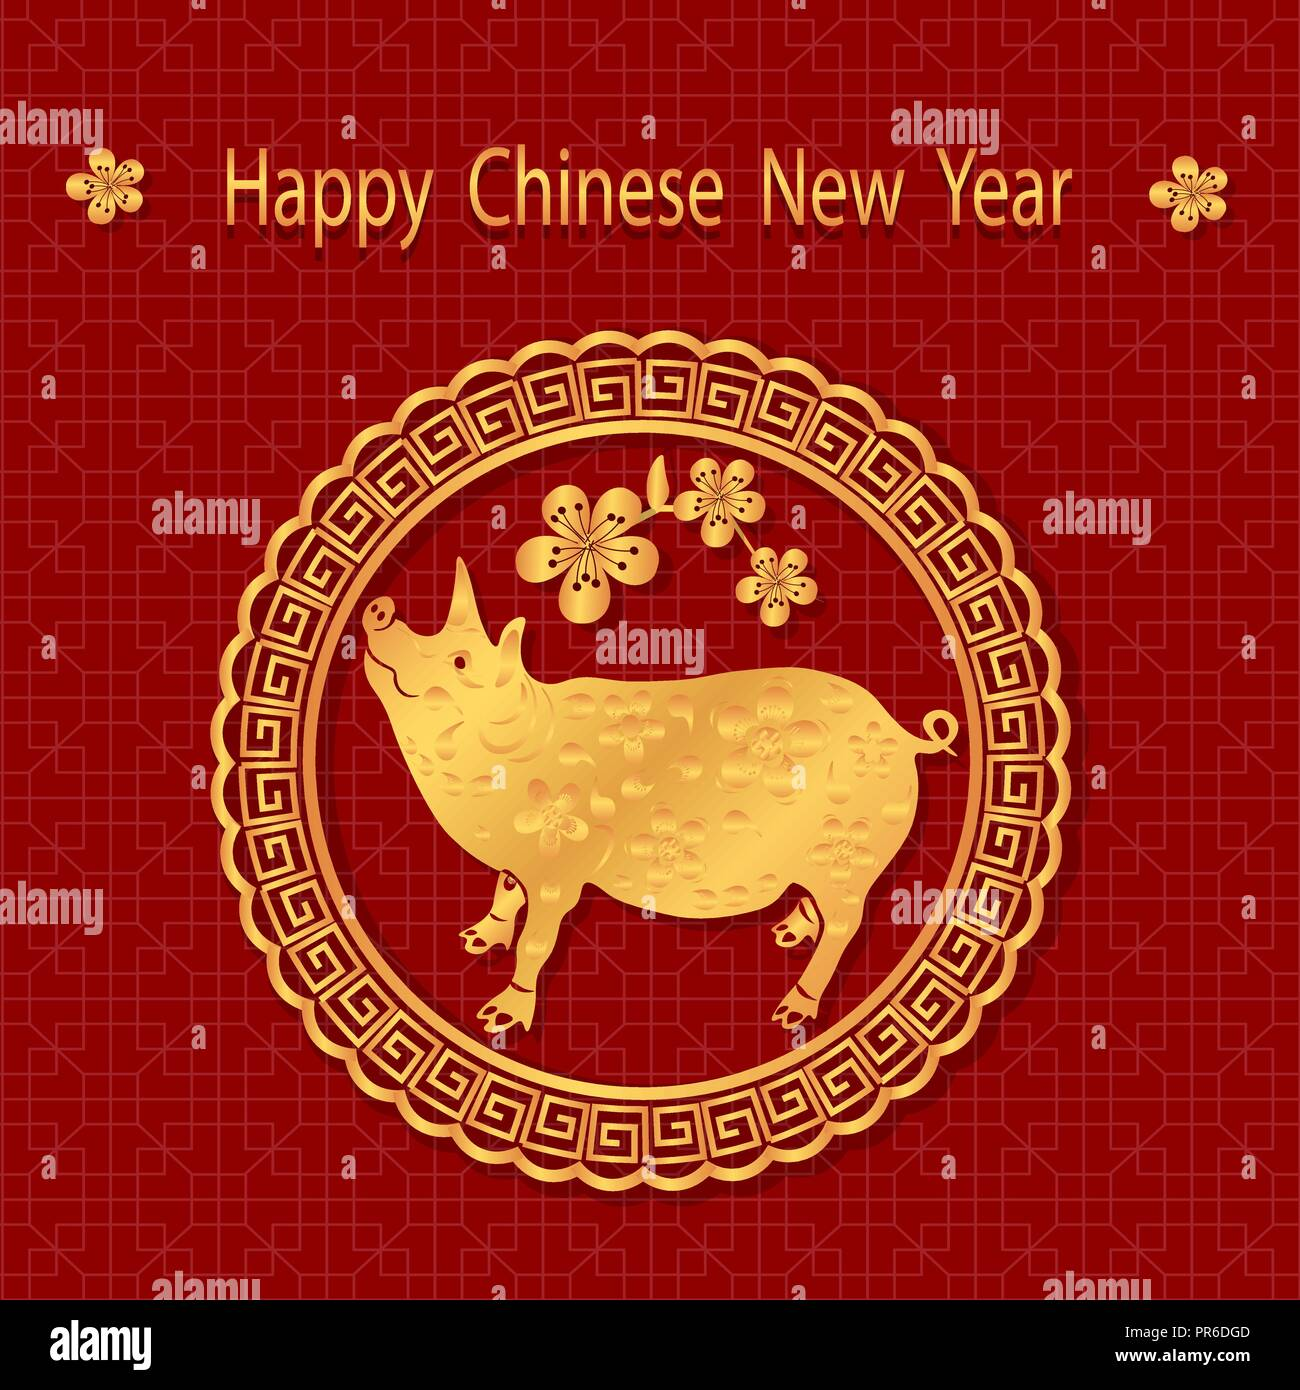 2019 Sign Of The Zodiac Greeting Inscription With The Chinese New